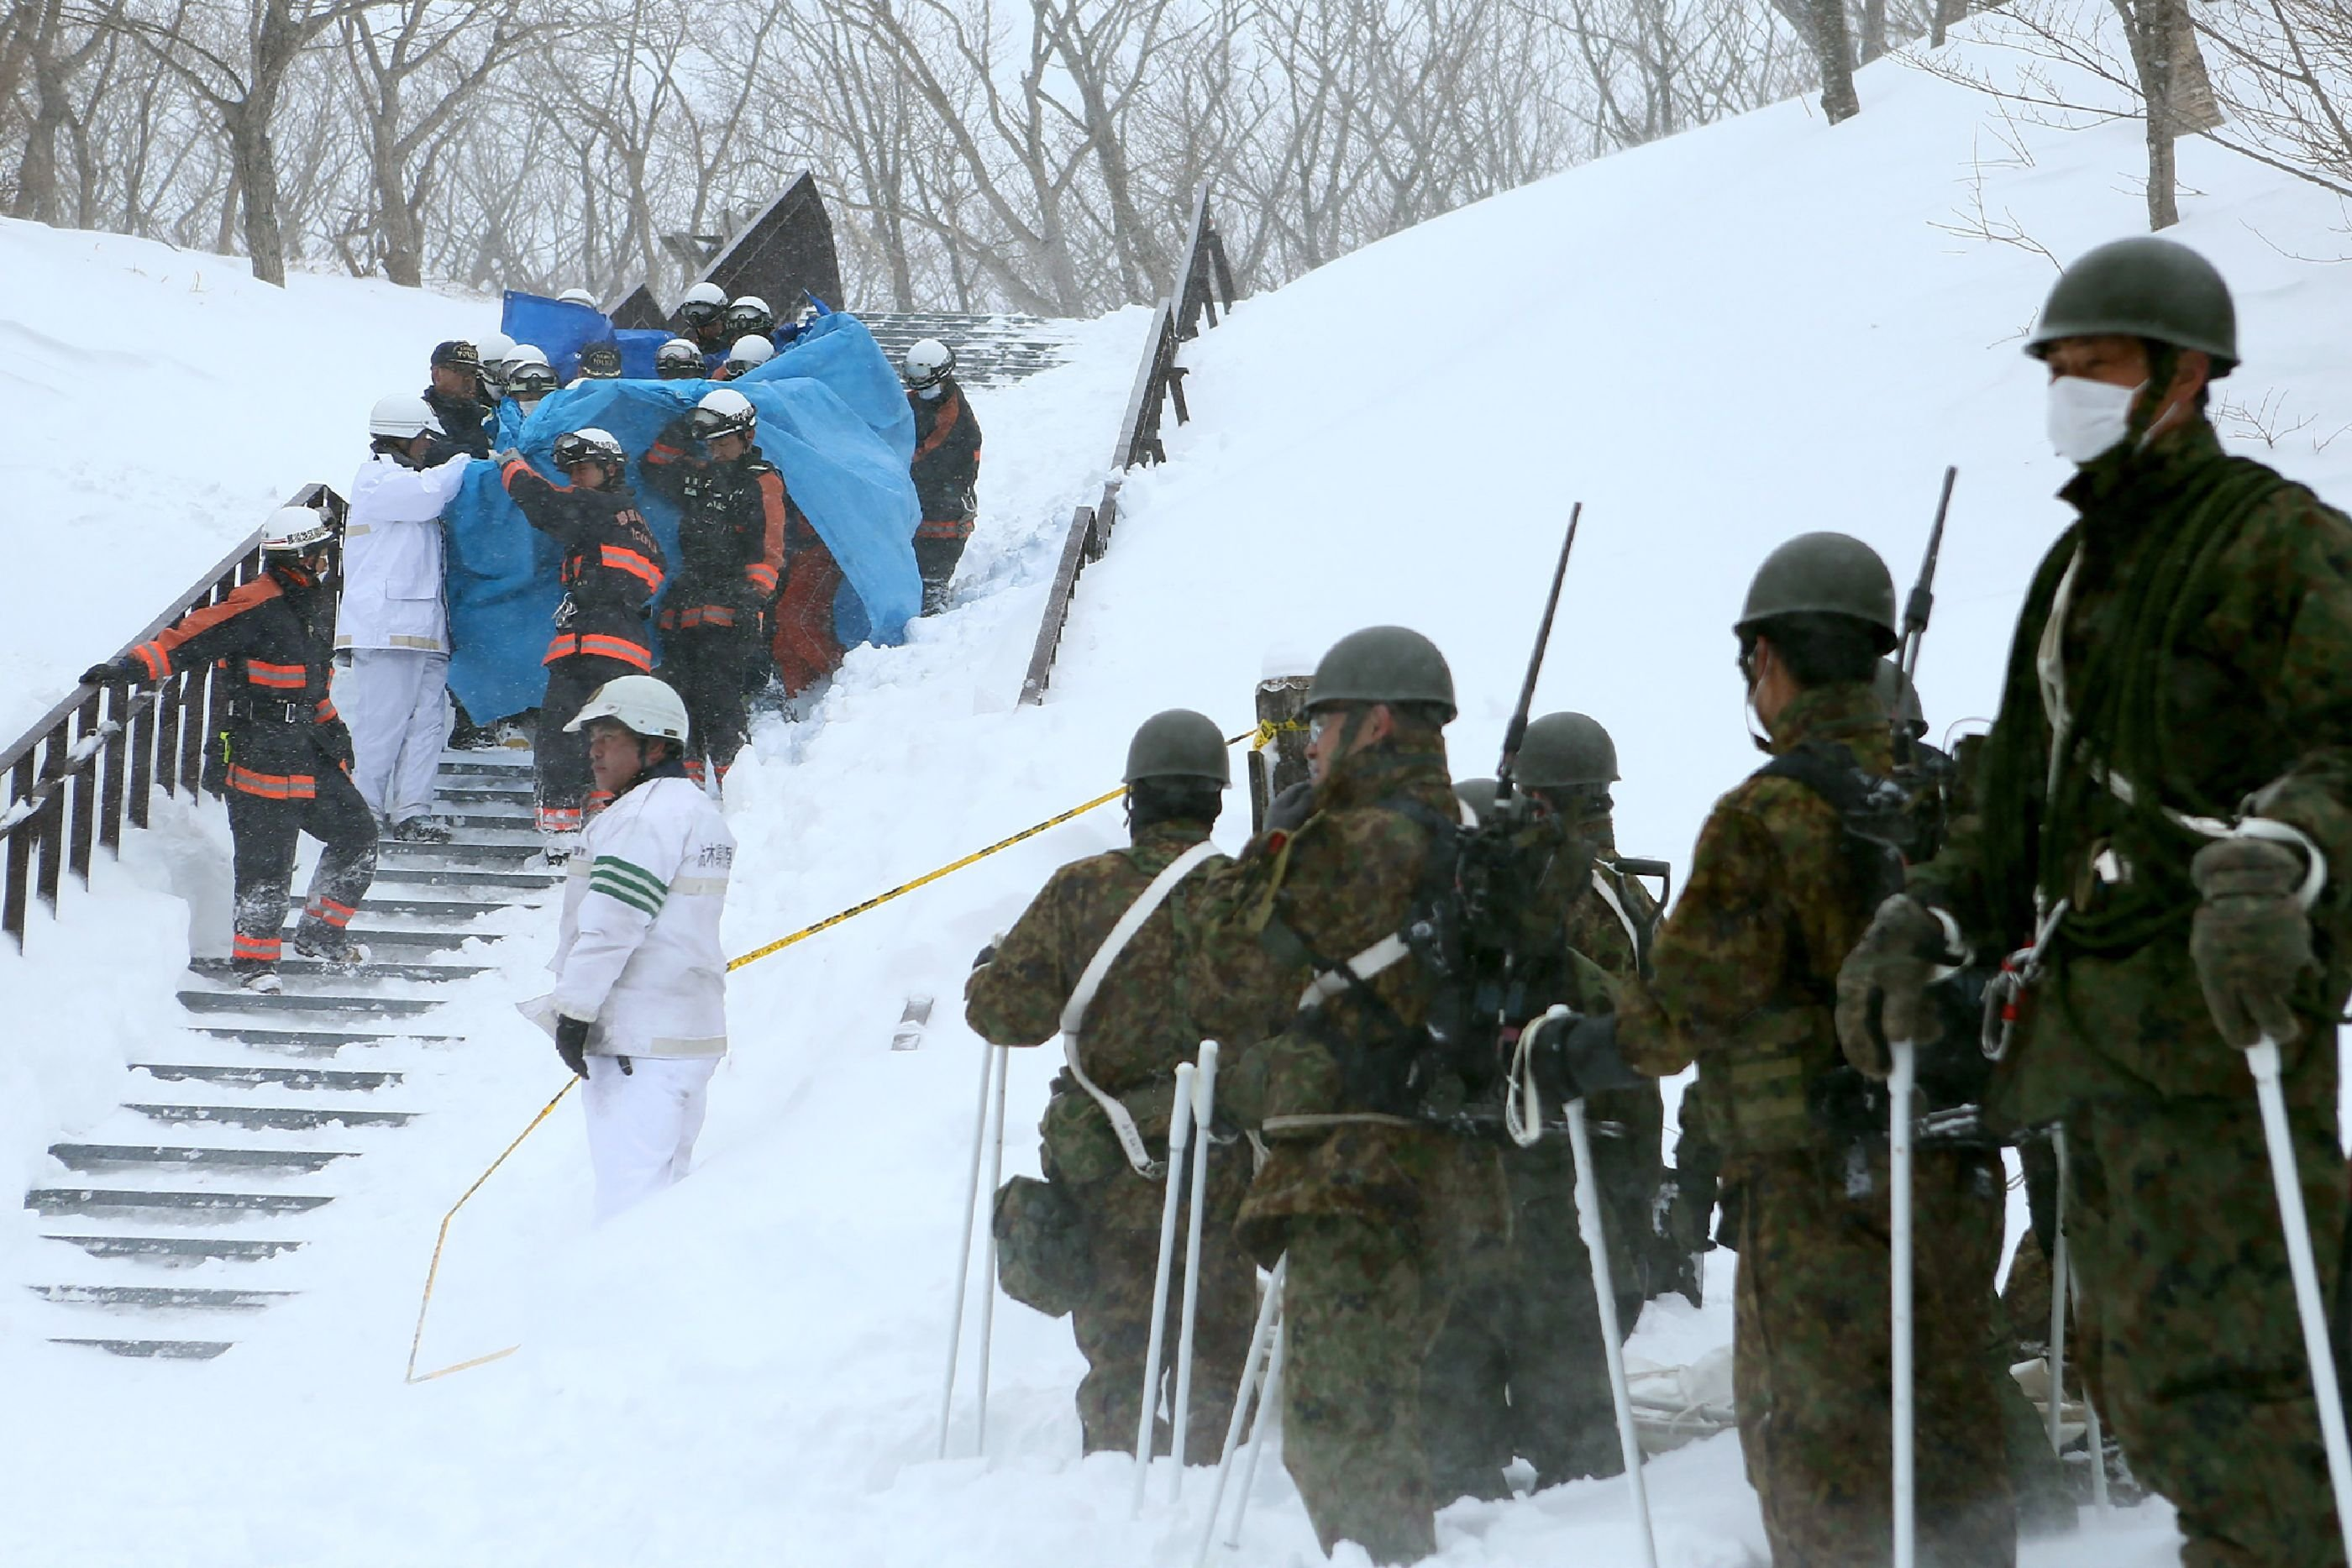 Eight Feared Dead as Avalanche Hits Japanese Students